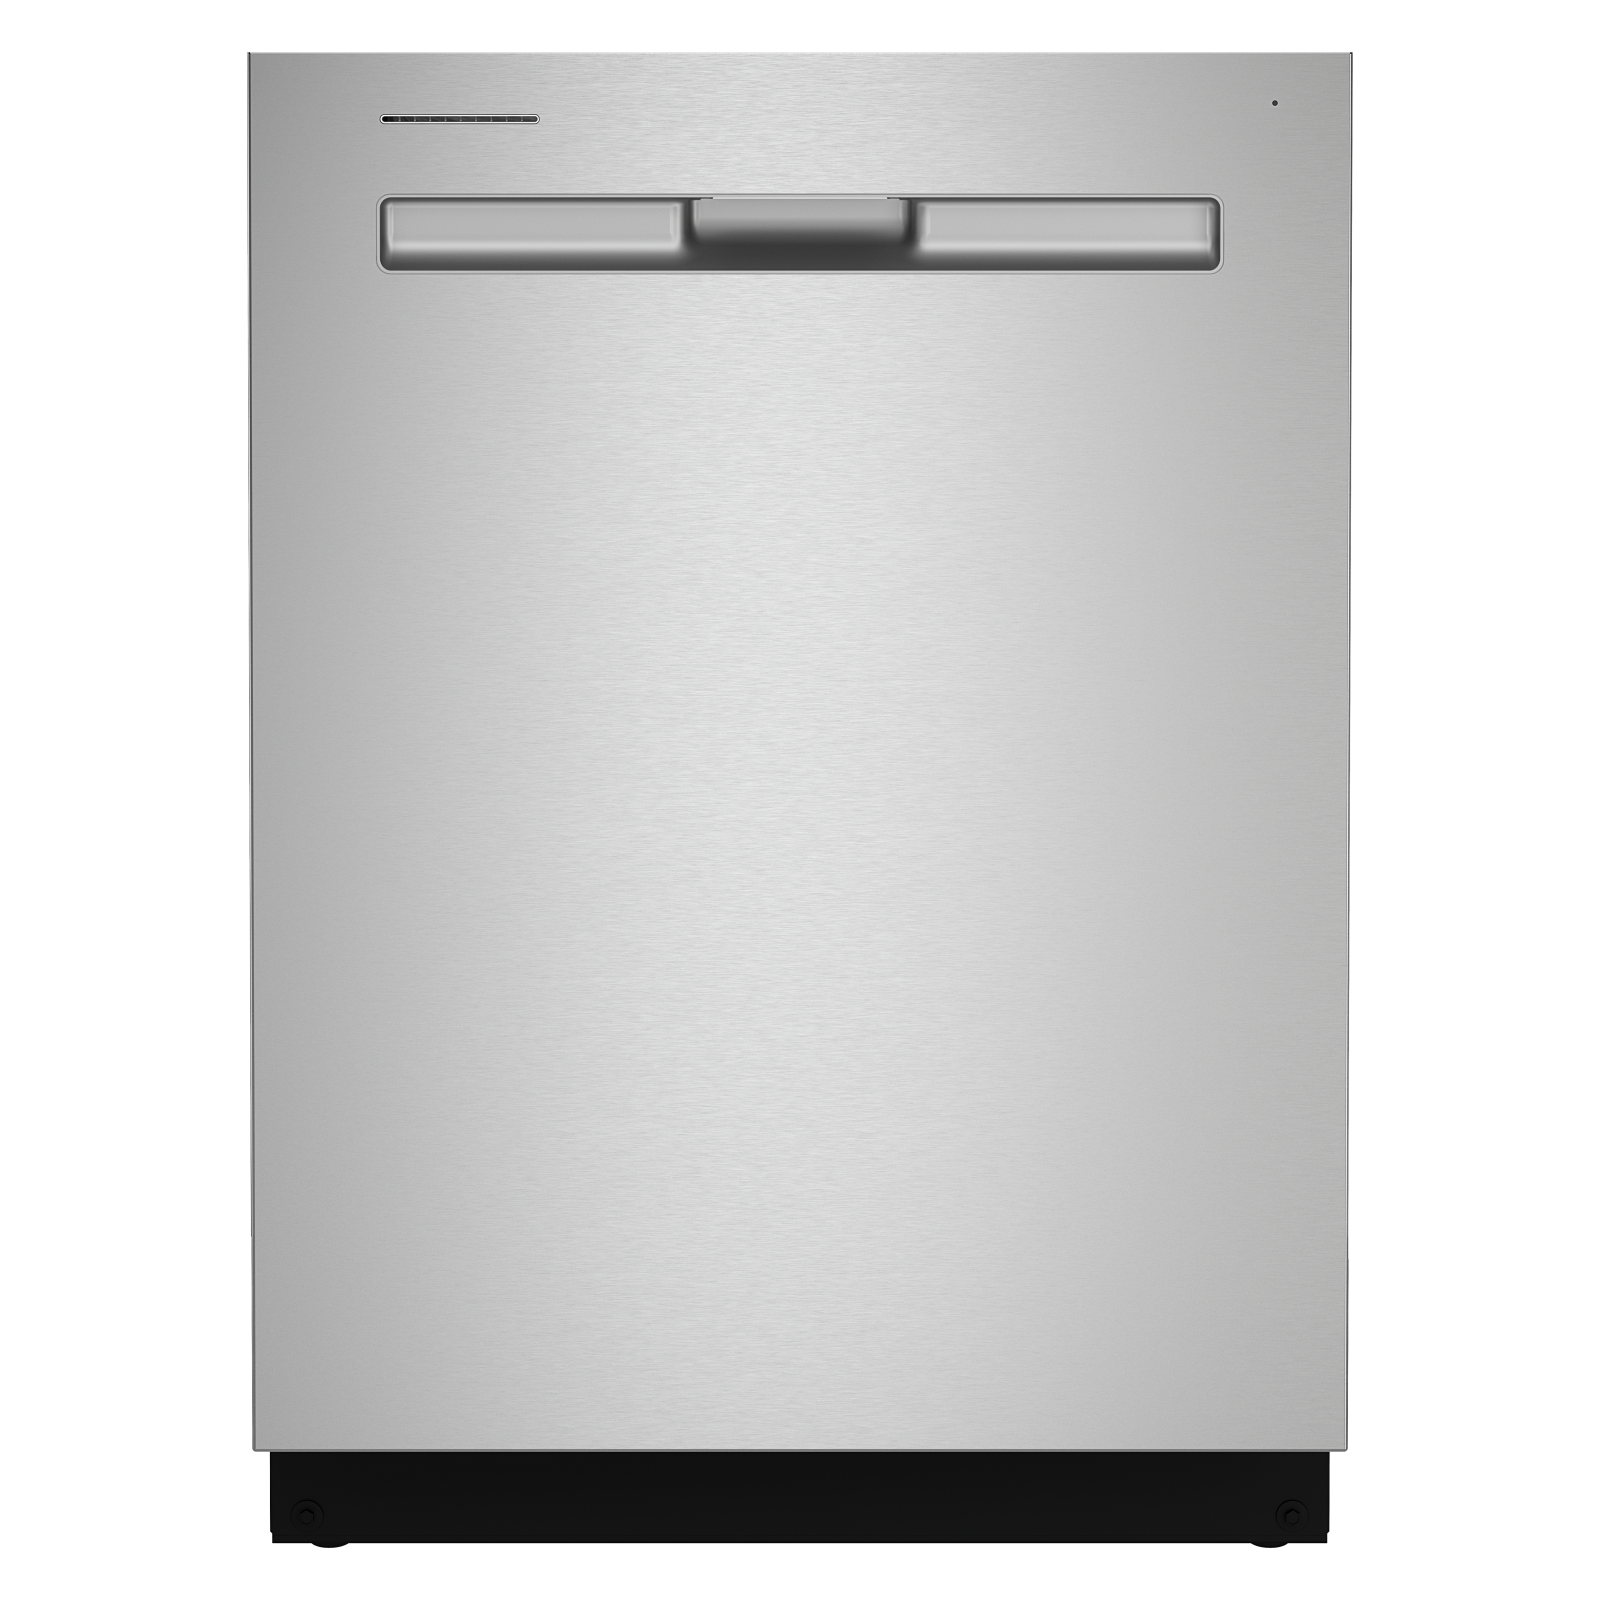 Maytag Dishwasher in Stainless Steel color showcased by Corbeil Electro Store